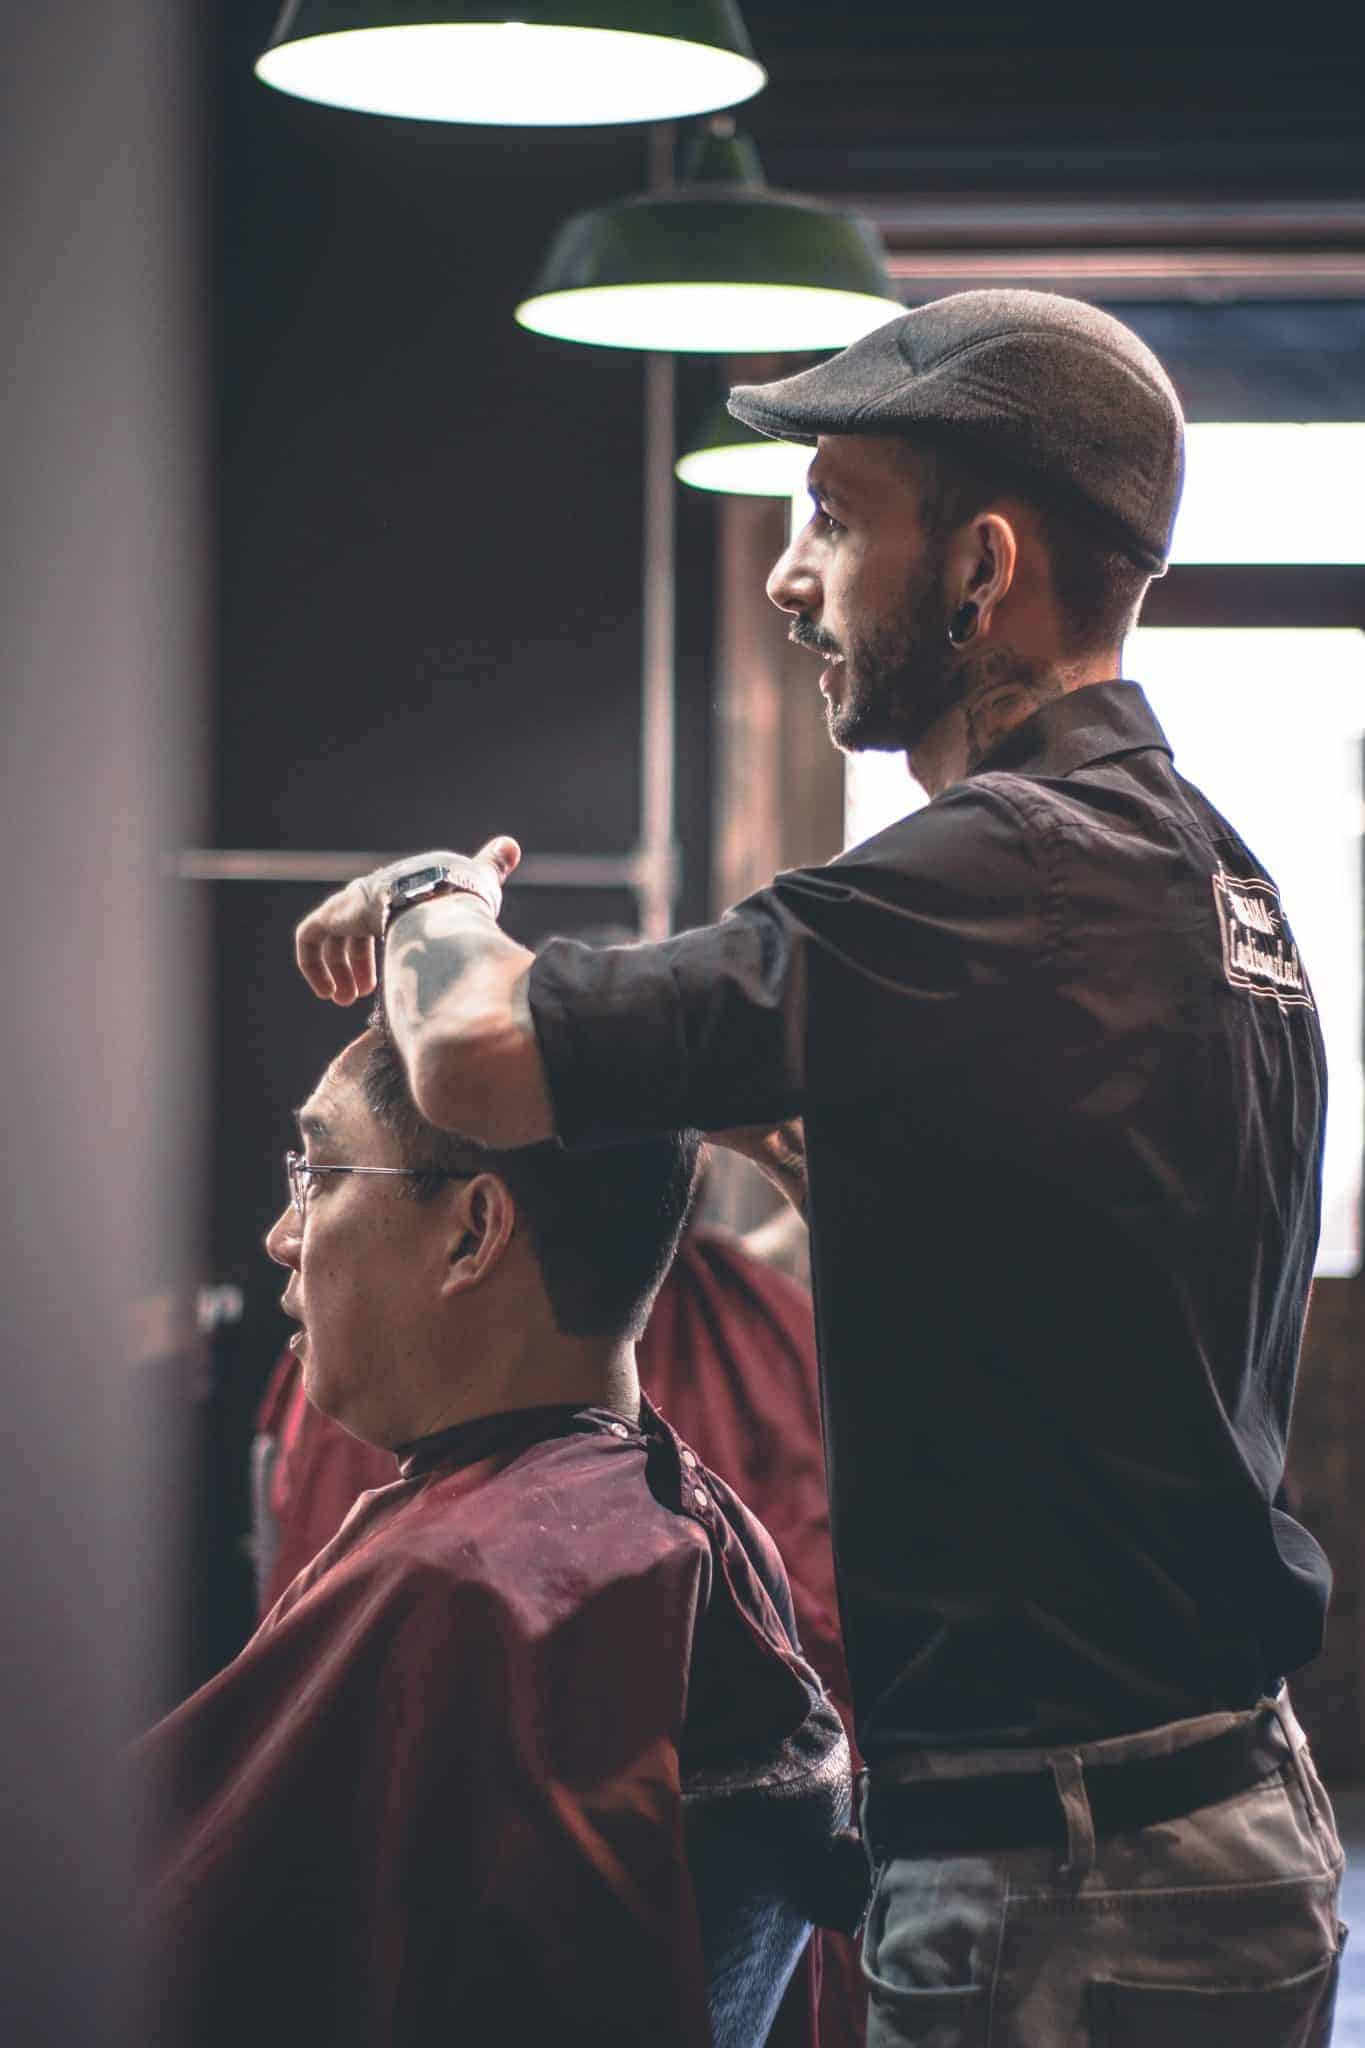 hair salon mens